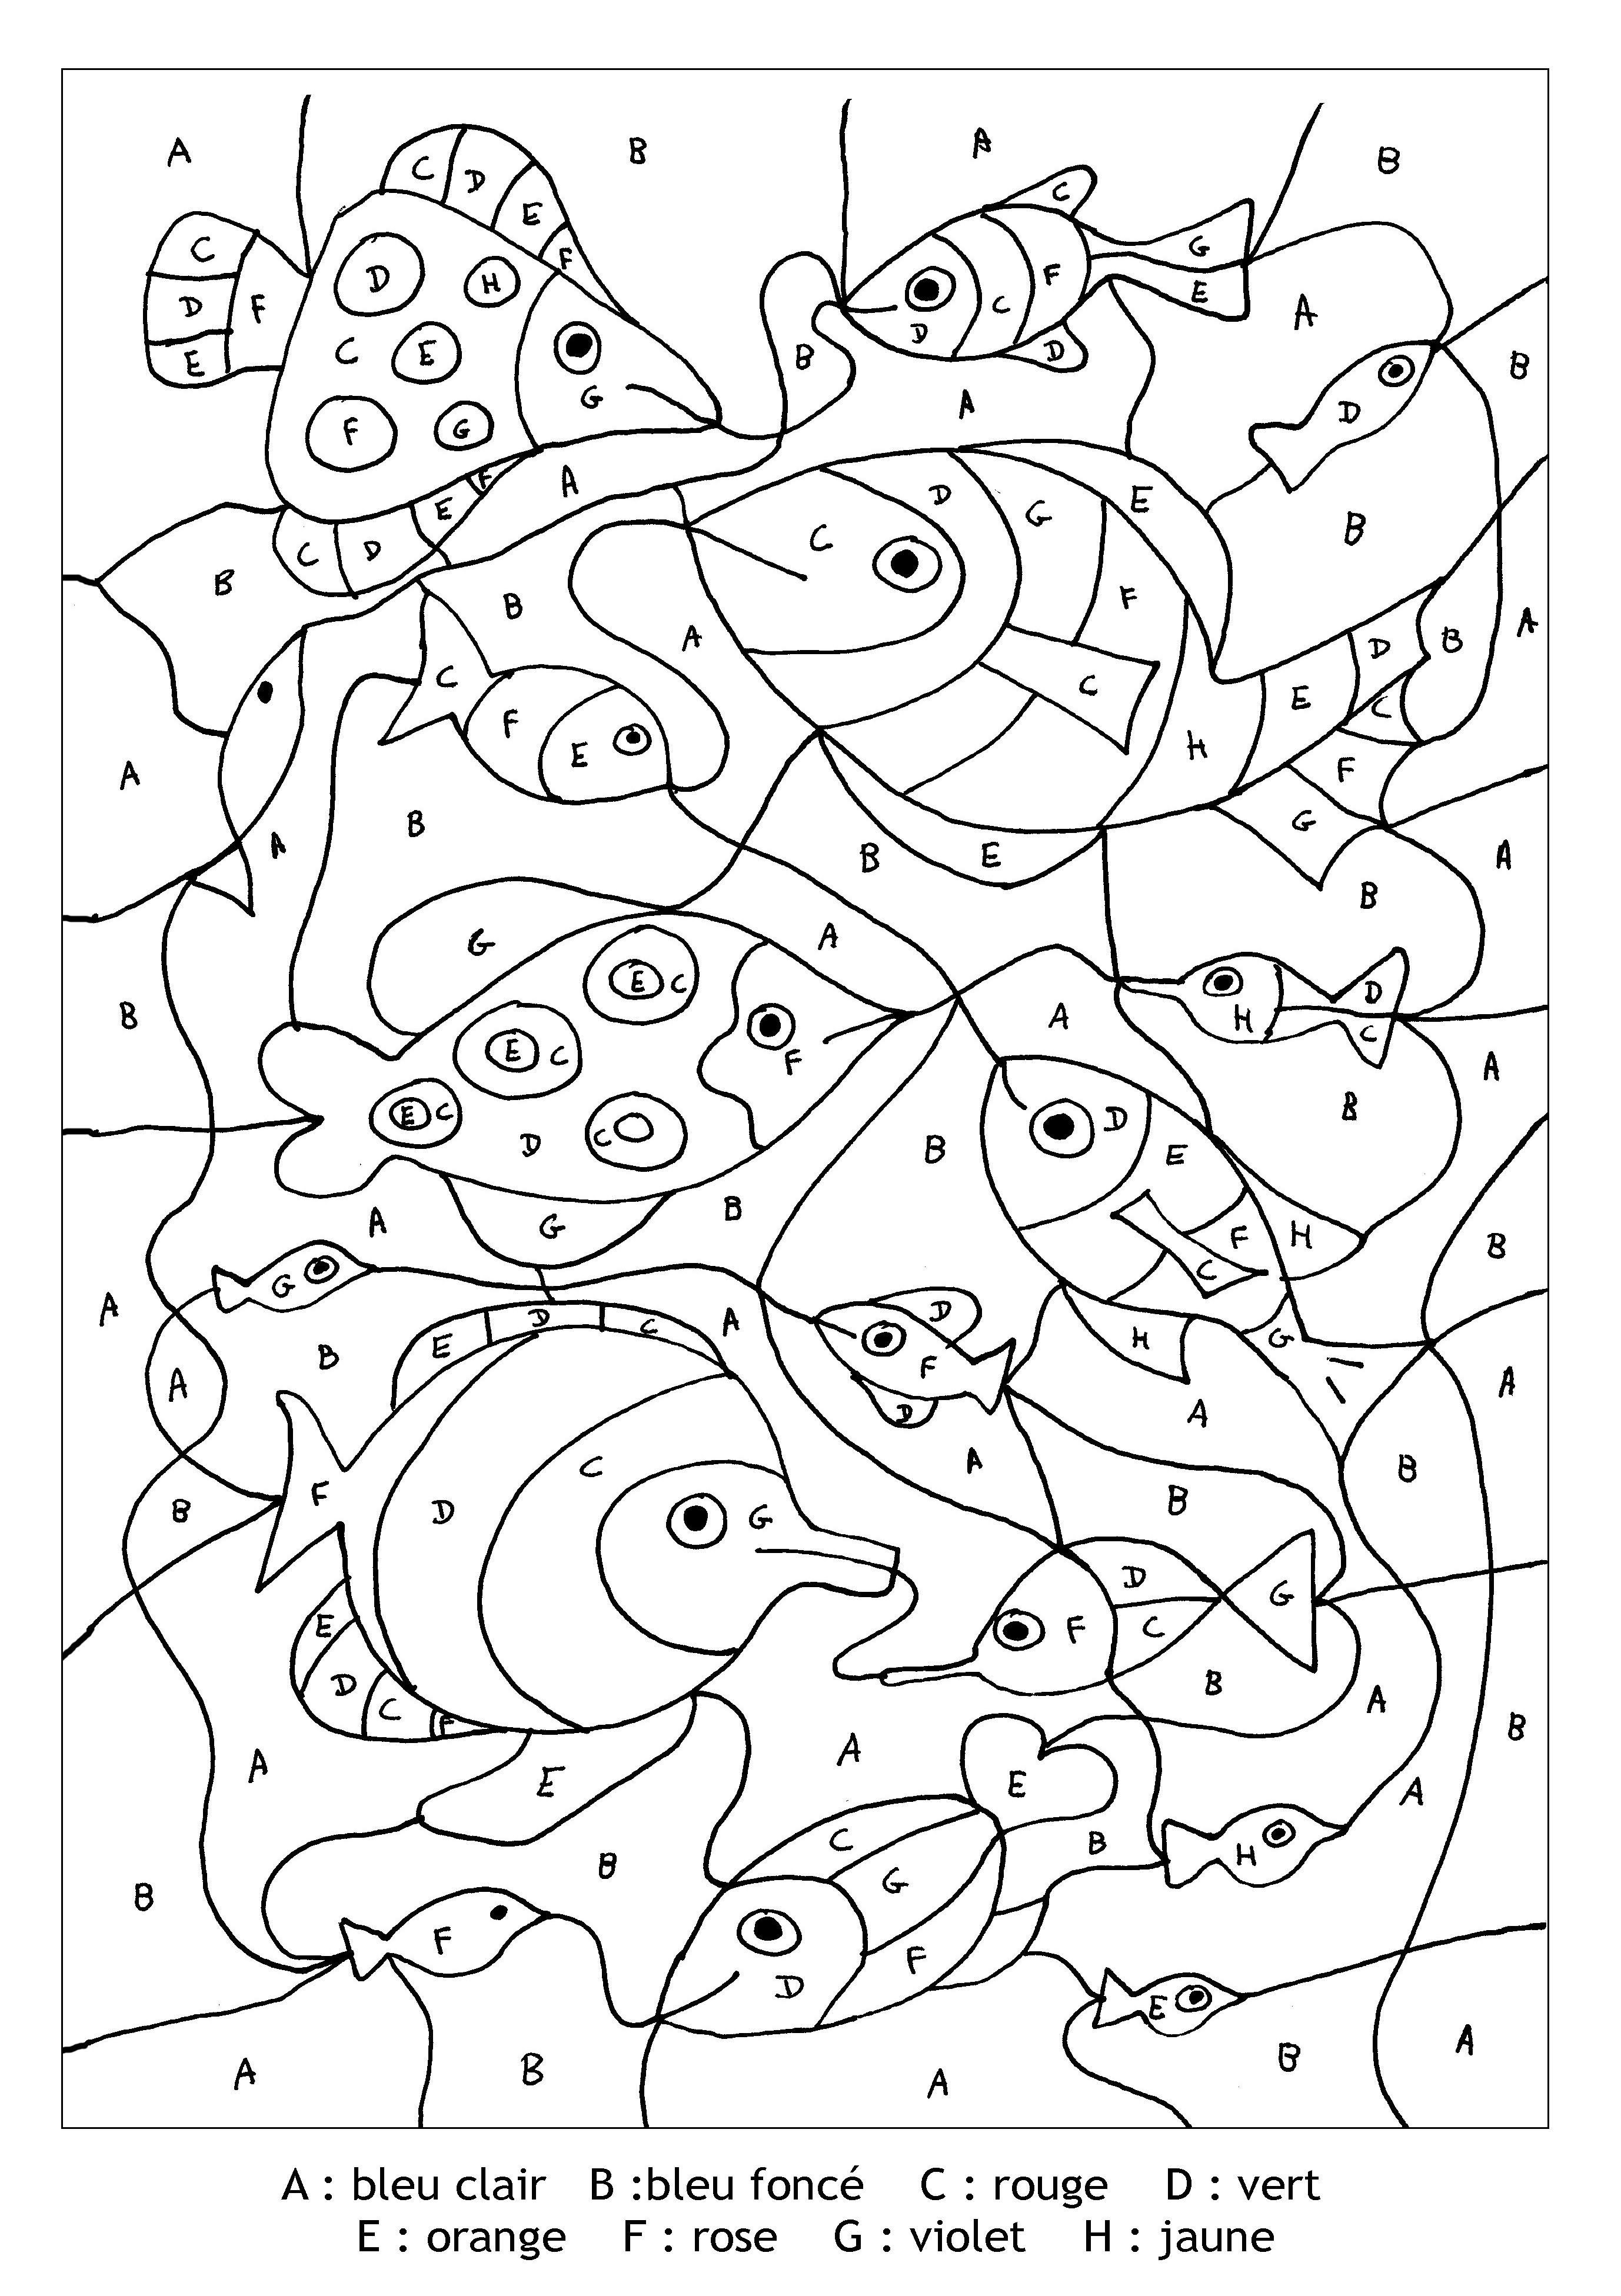 Nymphaea Mexicana Or Yellow Water Lily Coloring Page Free Printable Coloring Pages Nenuphar Dessin Nenuphar Image Coloree